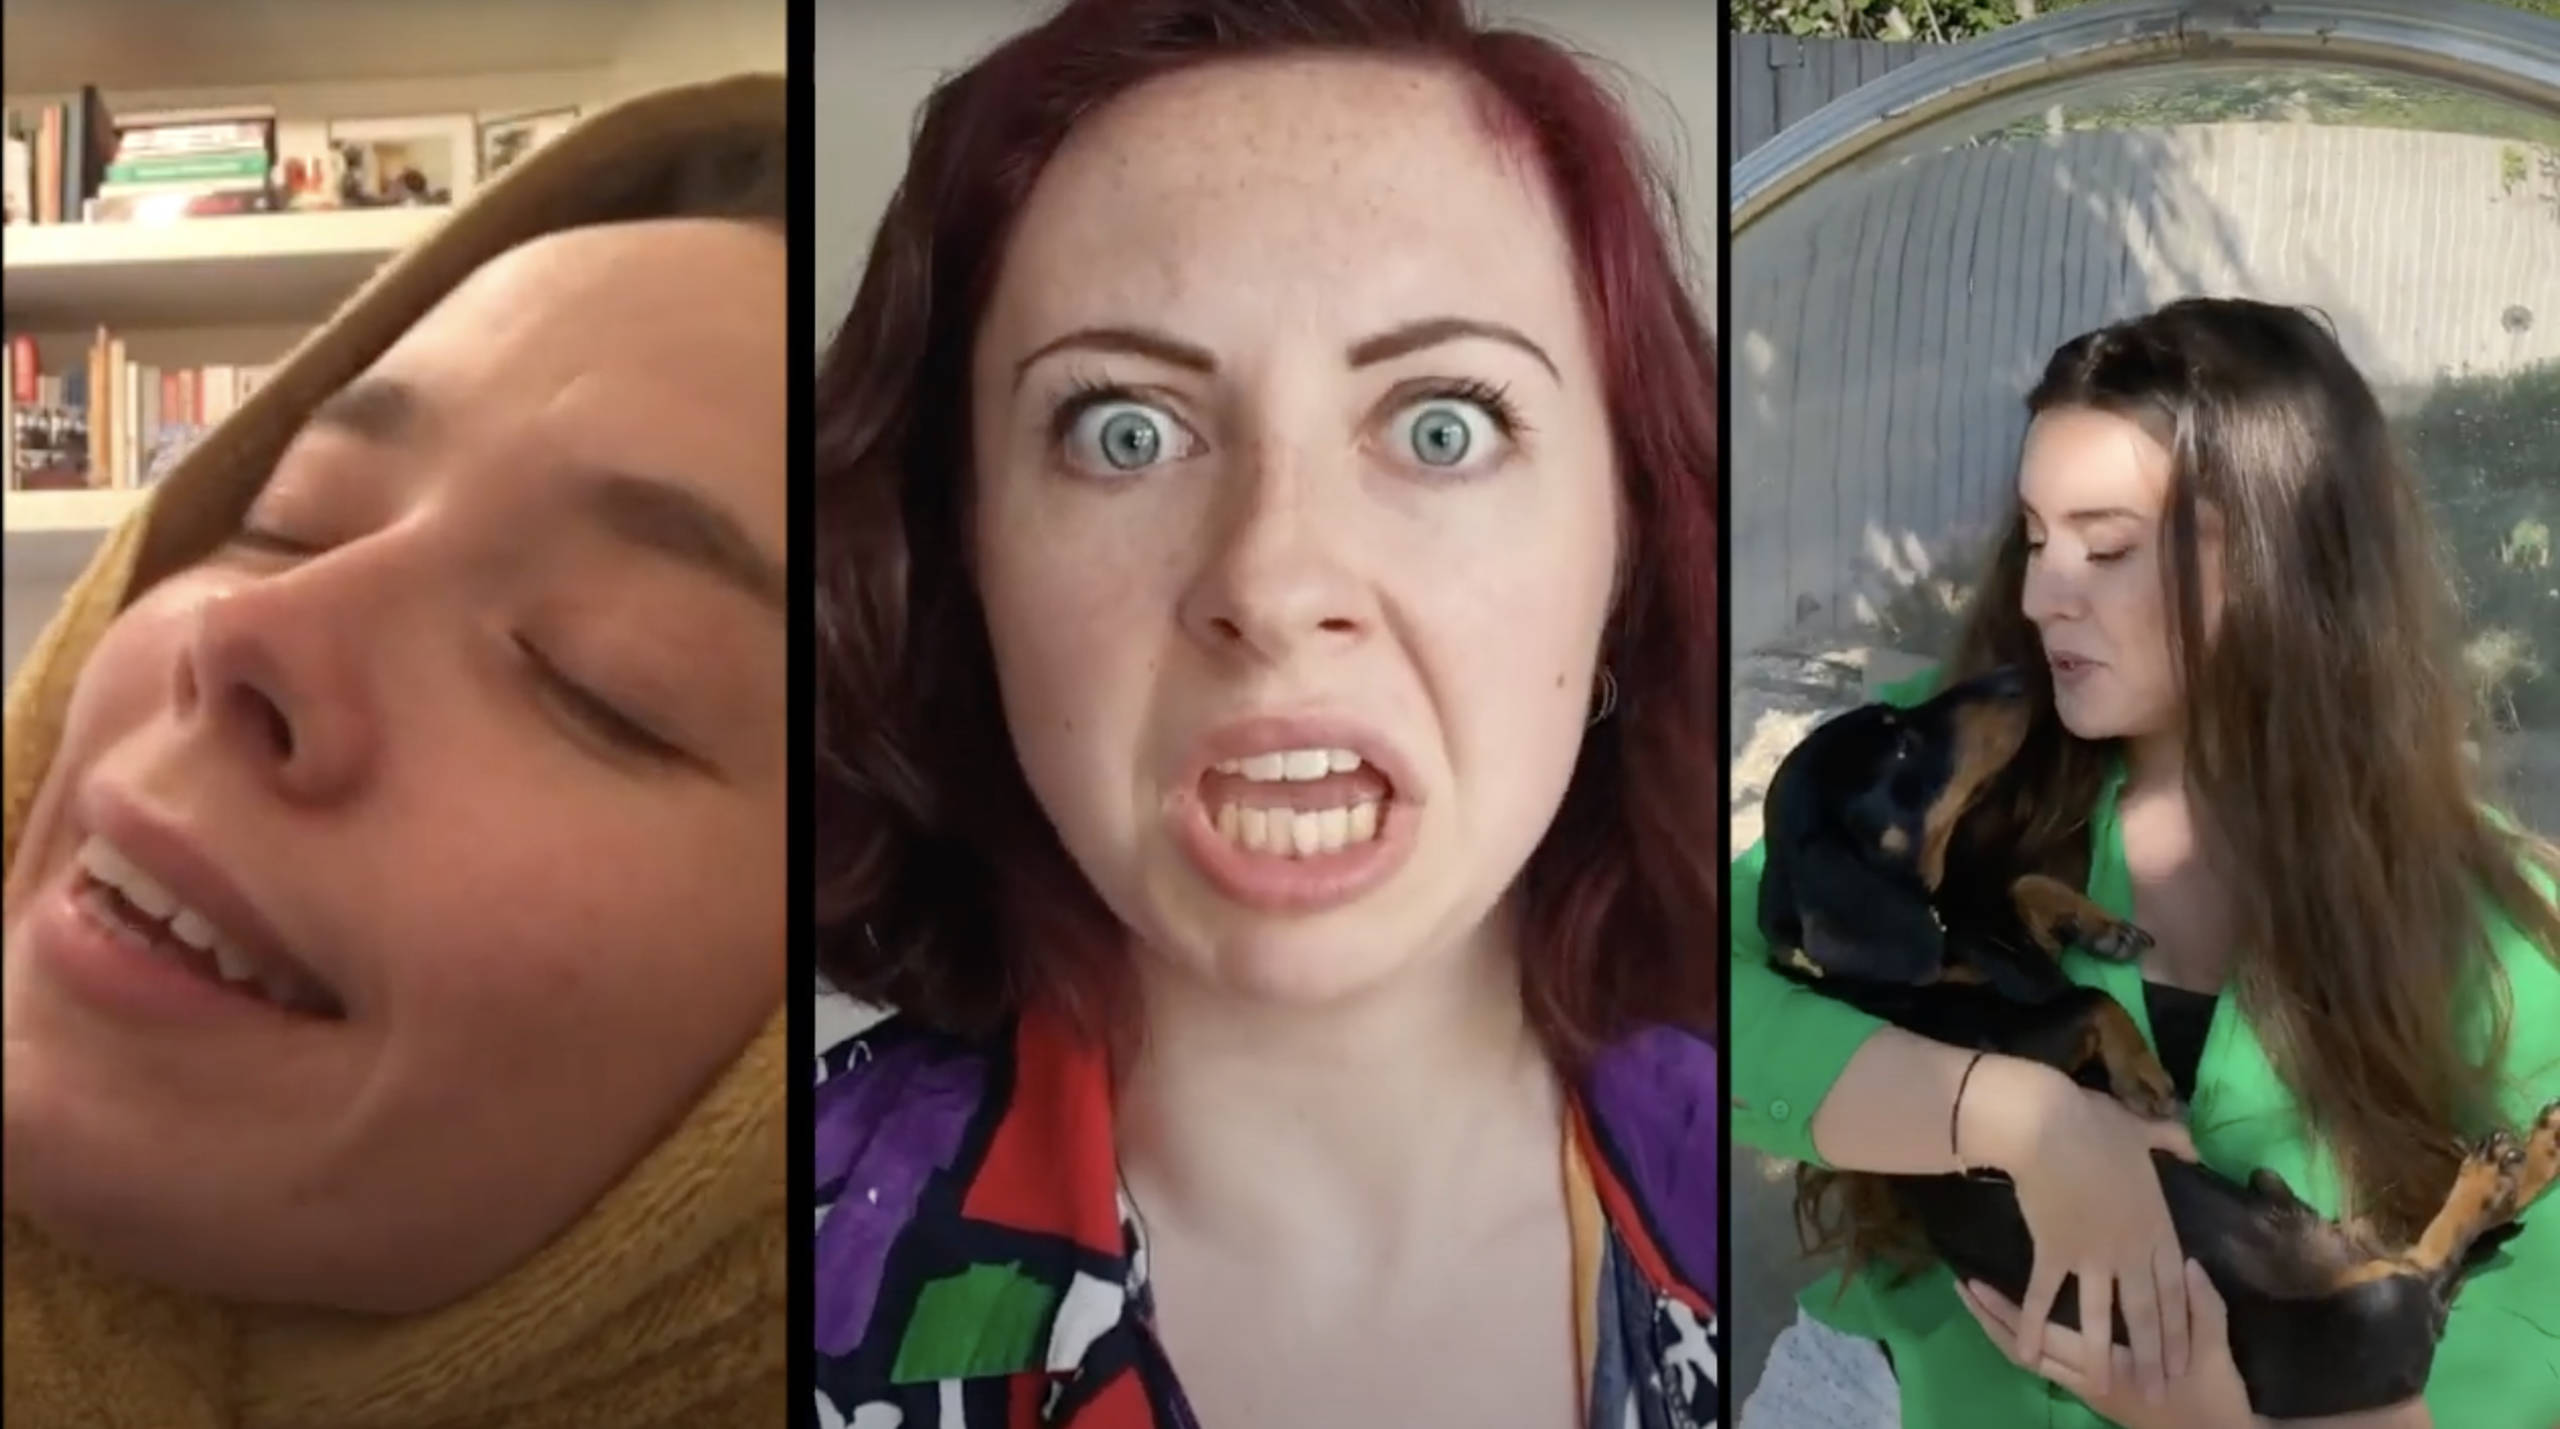 A split screen shows three actresses, one sleepy, one angry and one cudding a pet